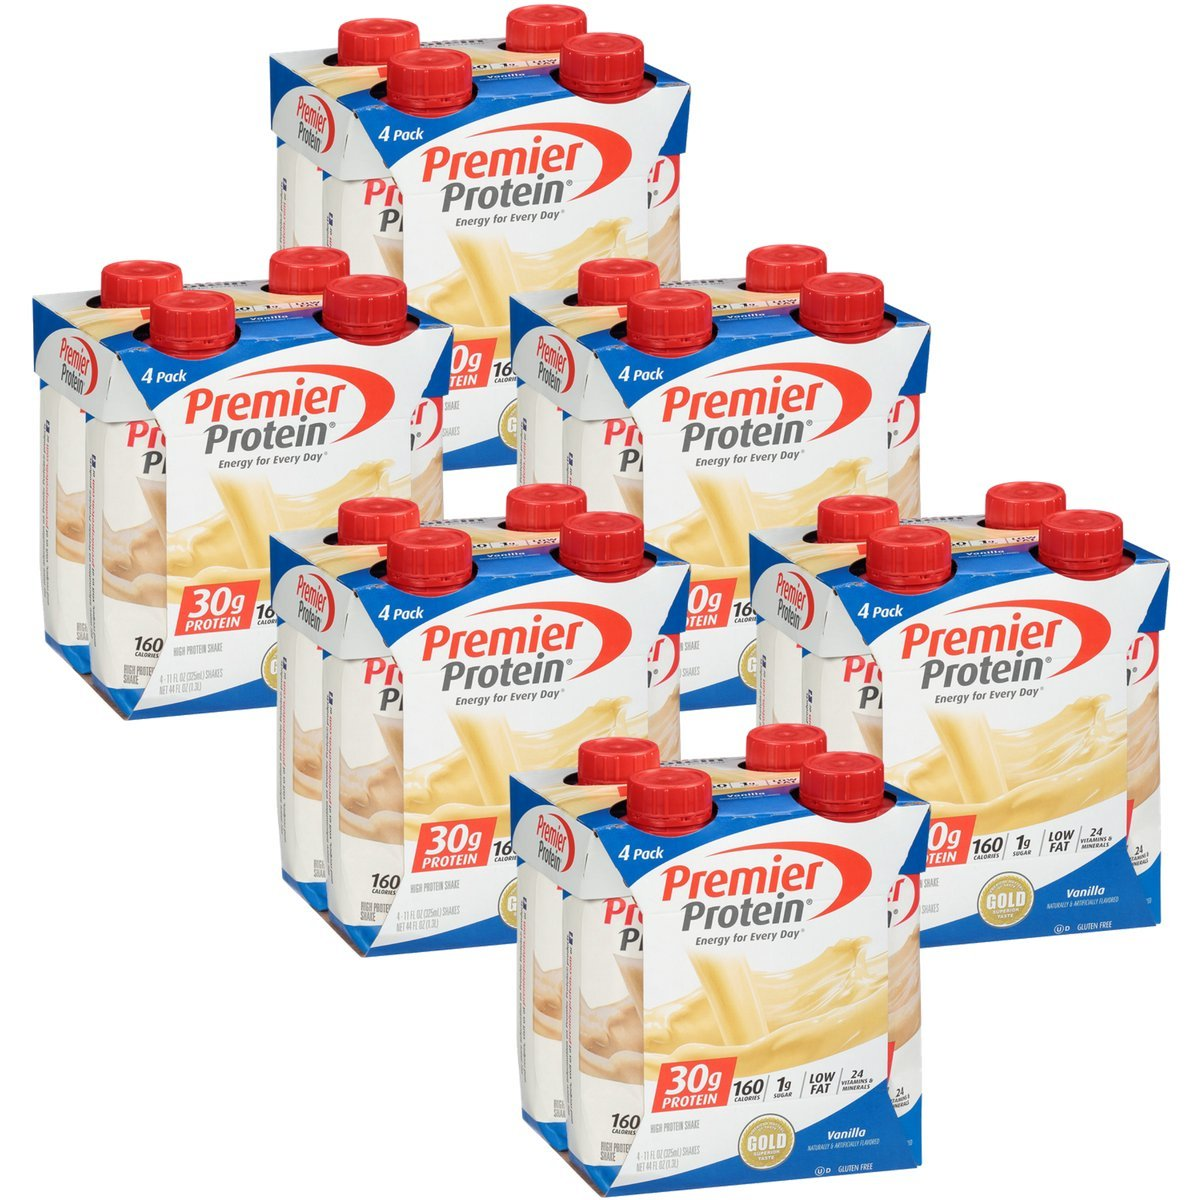 Premier Protein 30g Protein Shakes, Vanilla, 11 Fluid Ounces, 4 Count (Pack of 6)